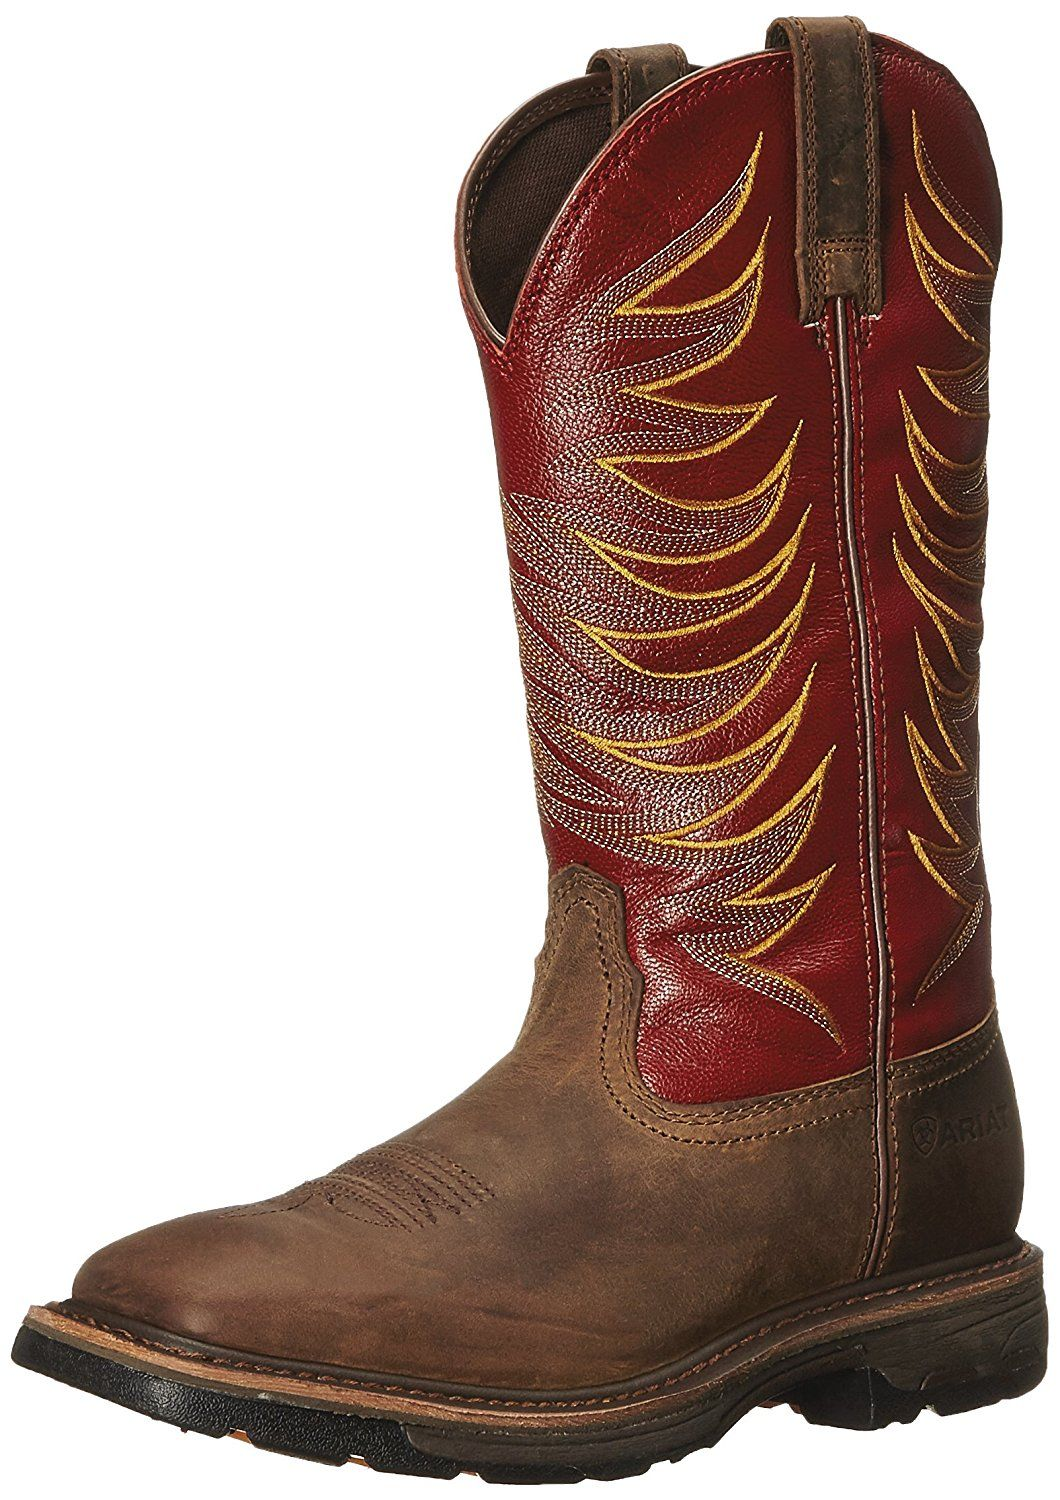 760acb2e742 Ariat Men's Workhog Wide Square Toe Tall II Soft Toe Distressed Boot ...